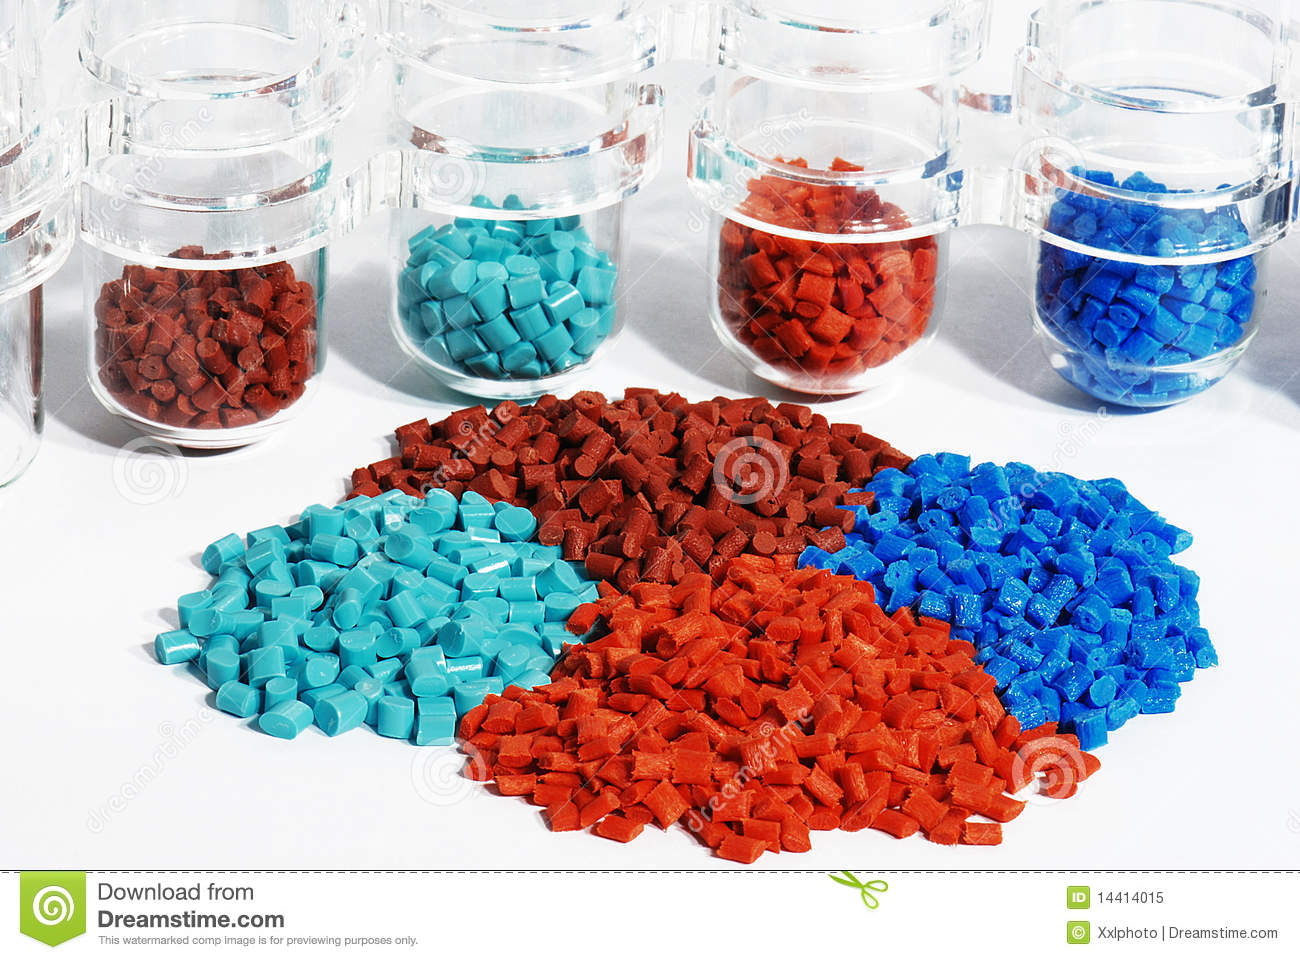 Dyed Plastic Granulate In Test Glasses Royalty Free Stock Photo.